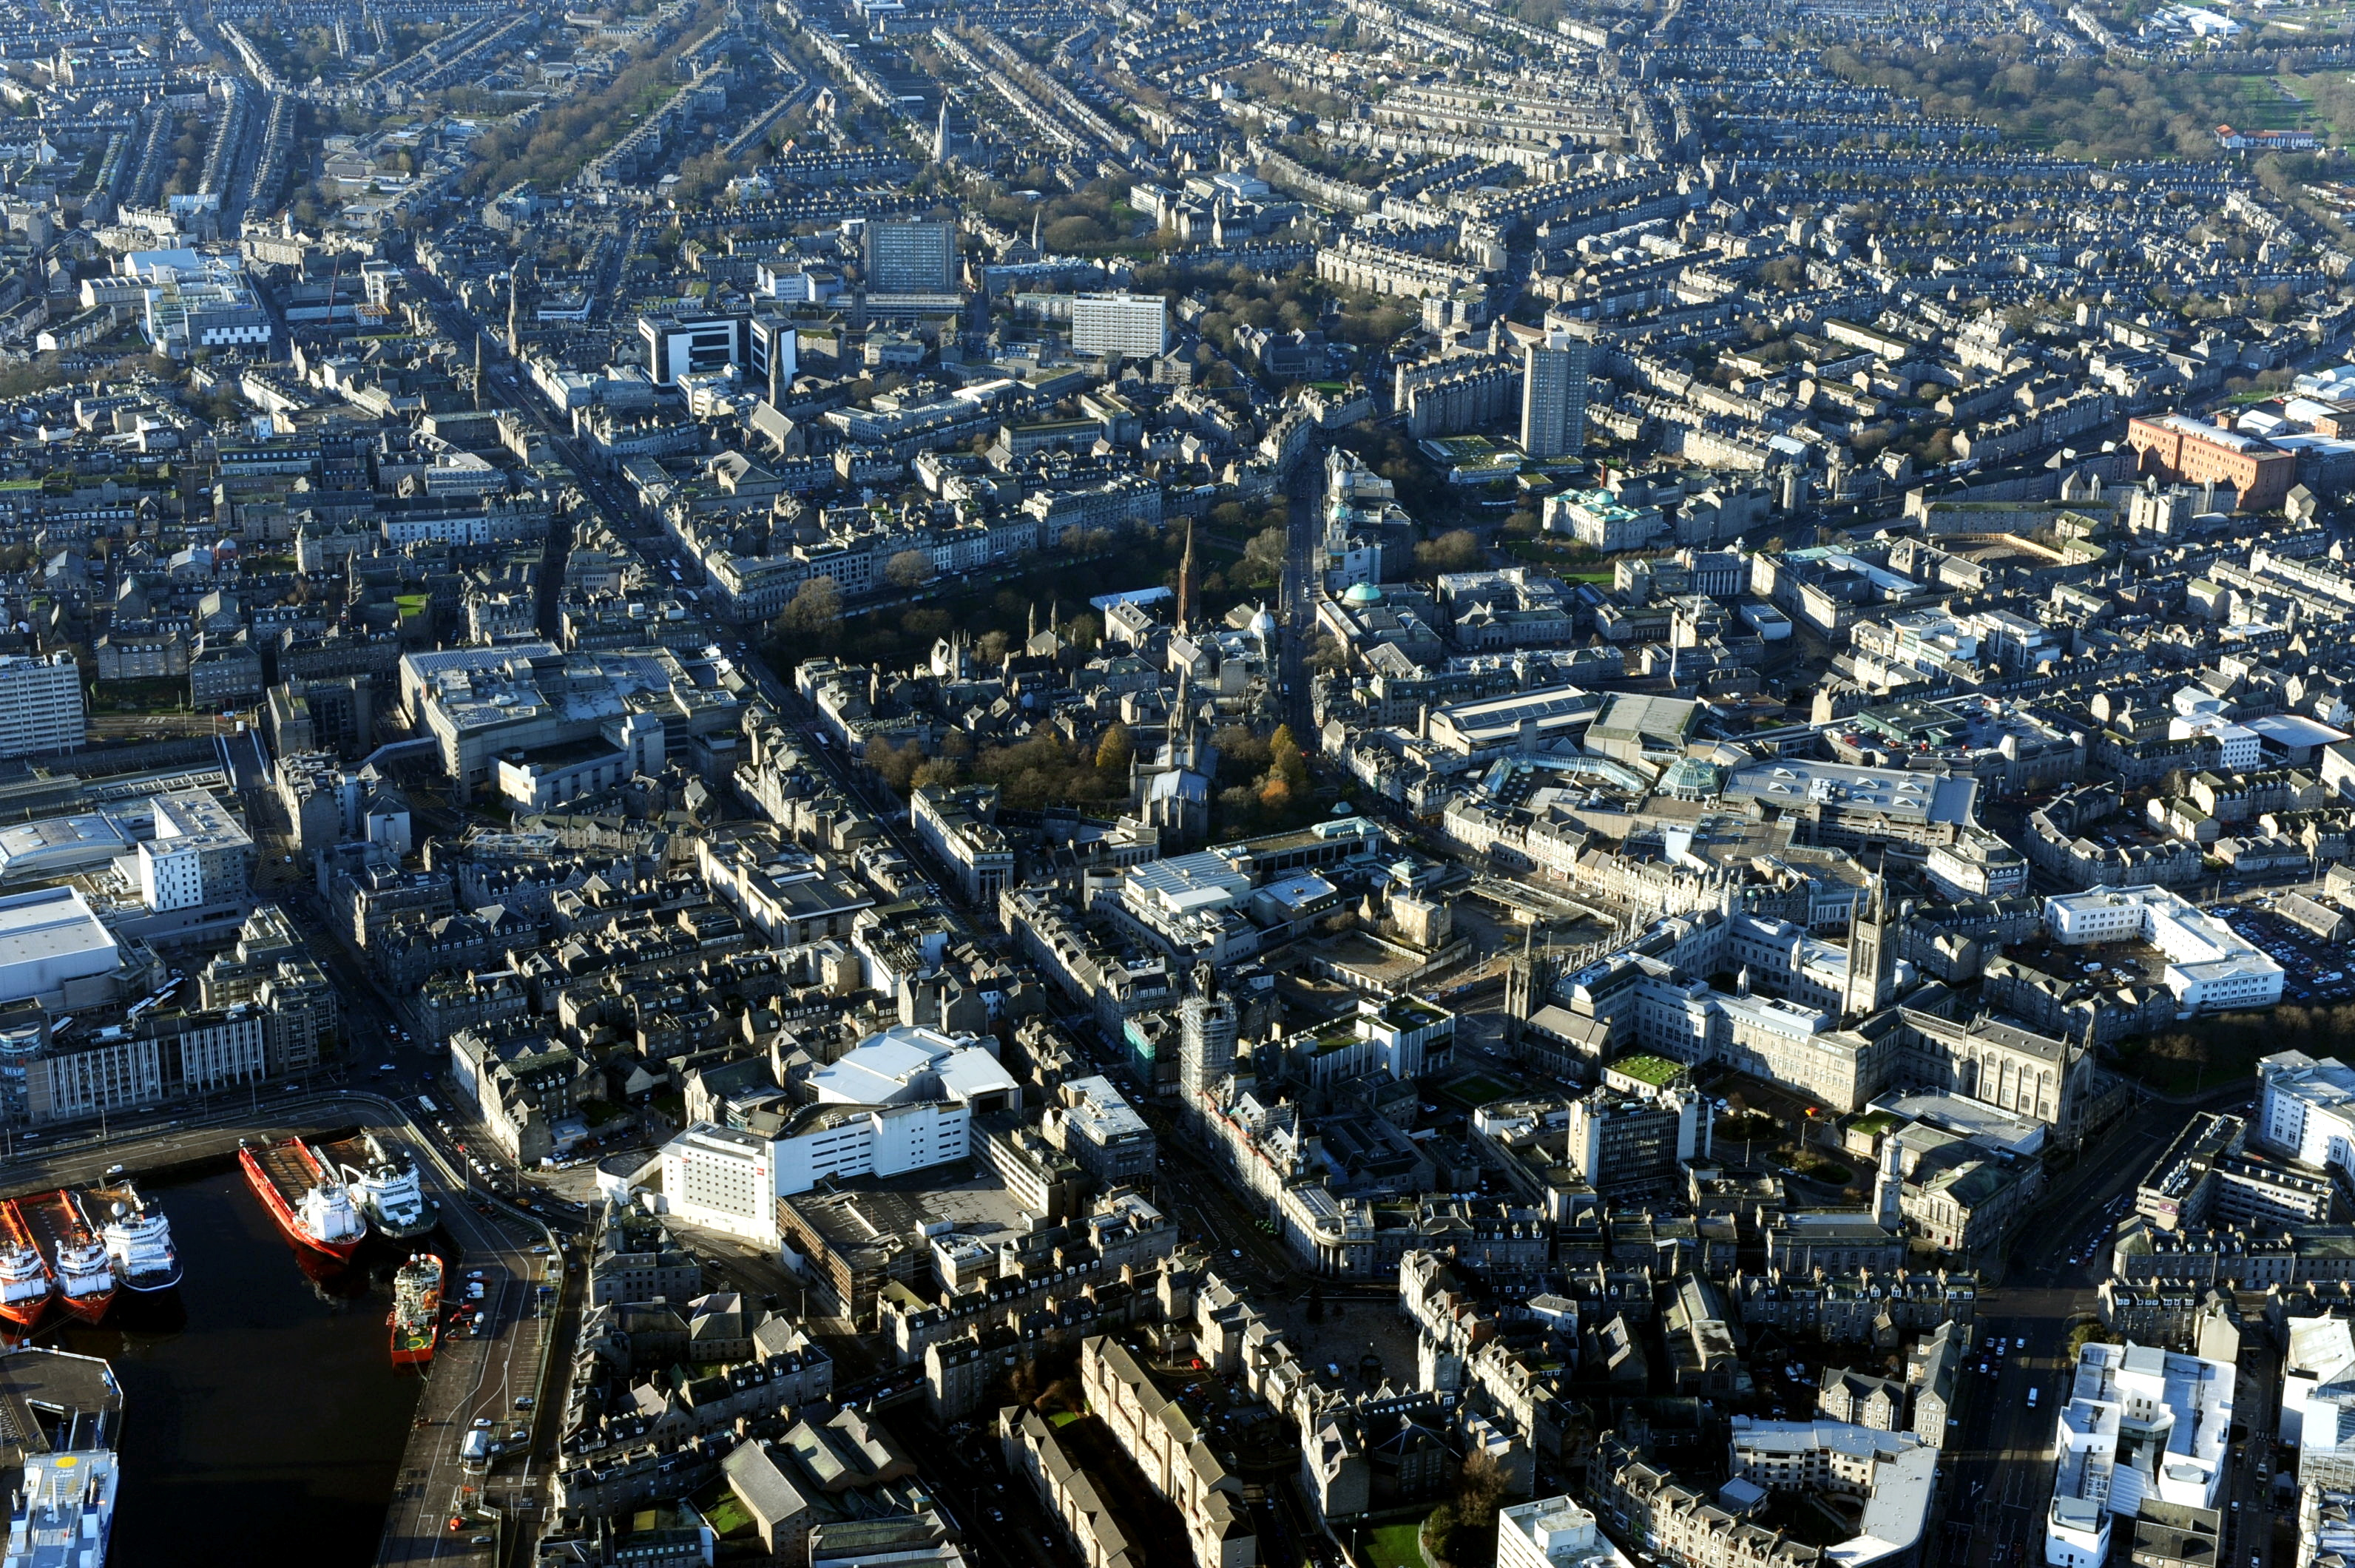 The MPs have made the business case for investing £2.9 billion in the region's infrastructure.